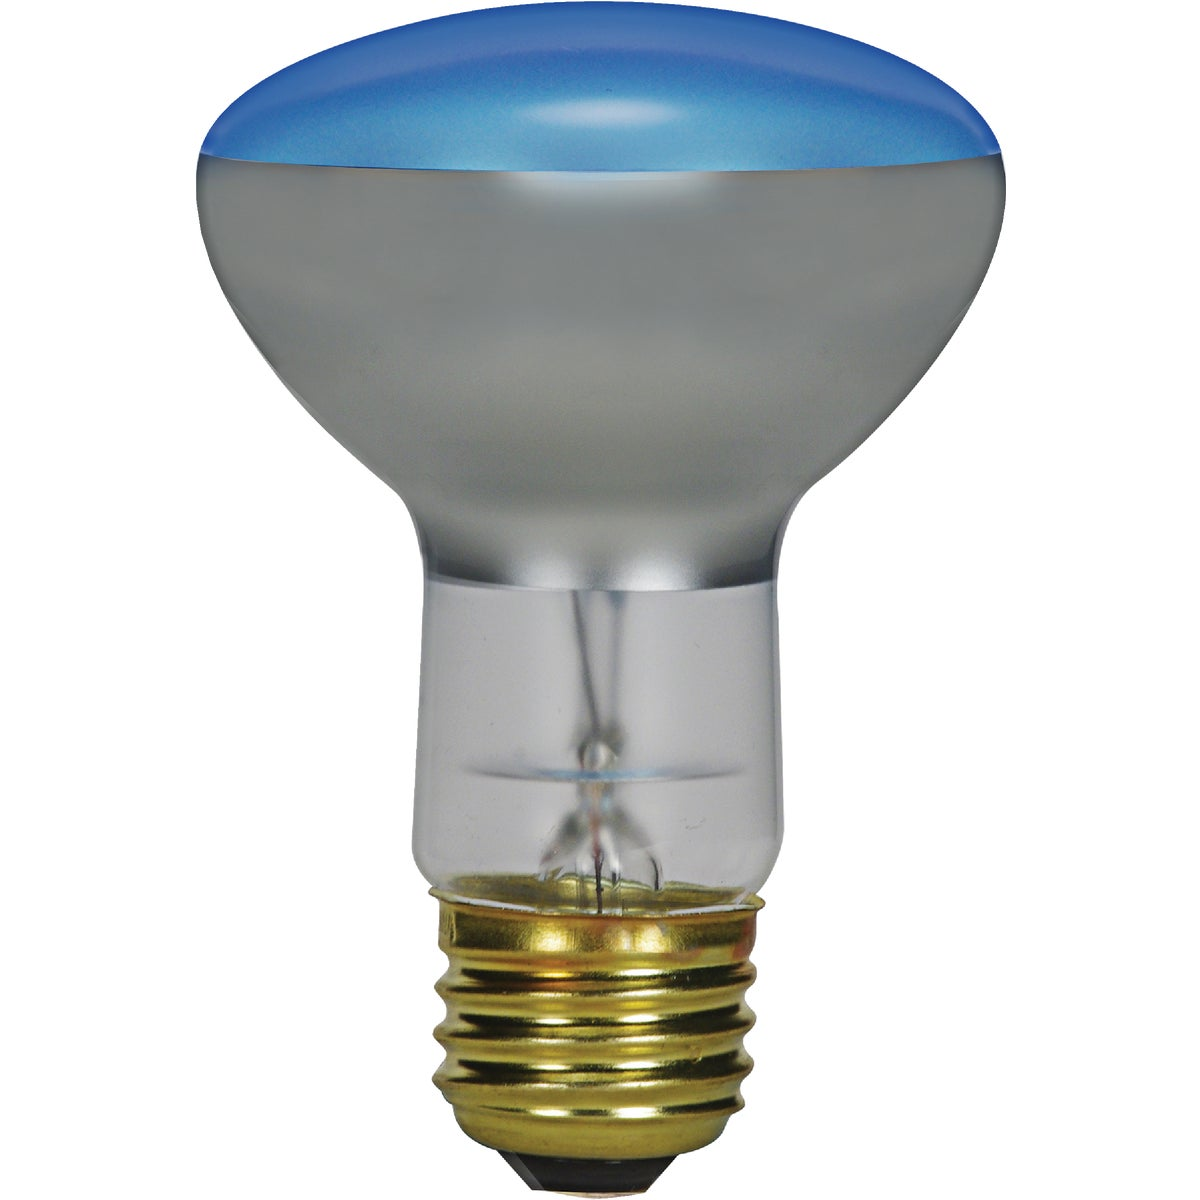 65W PLANT LIGHT BULB - 20996 65R30/PL by G E Lighting